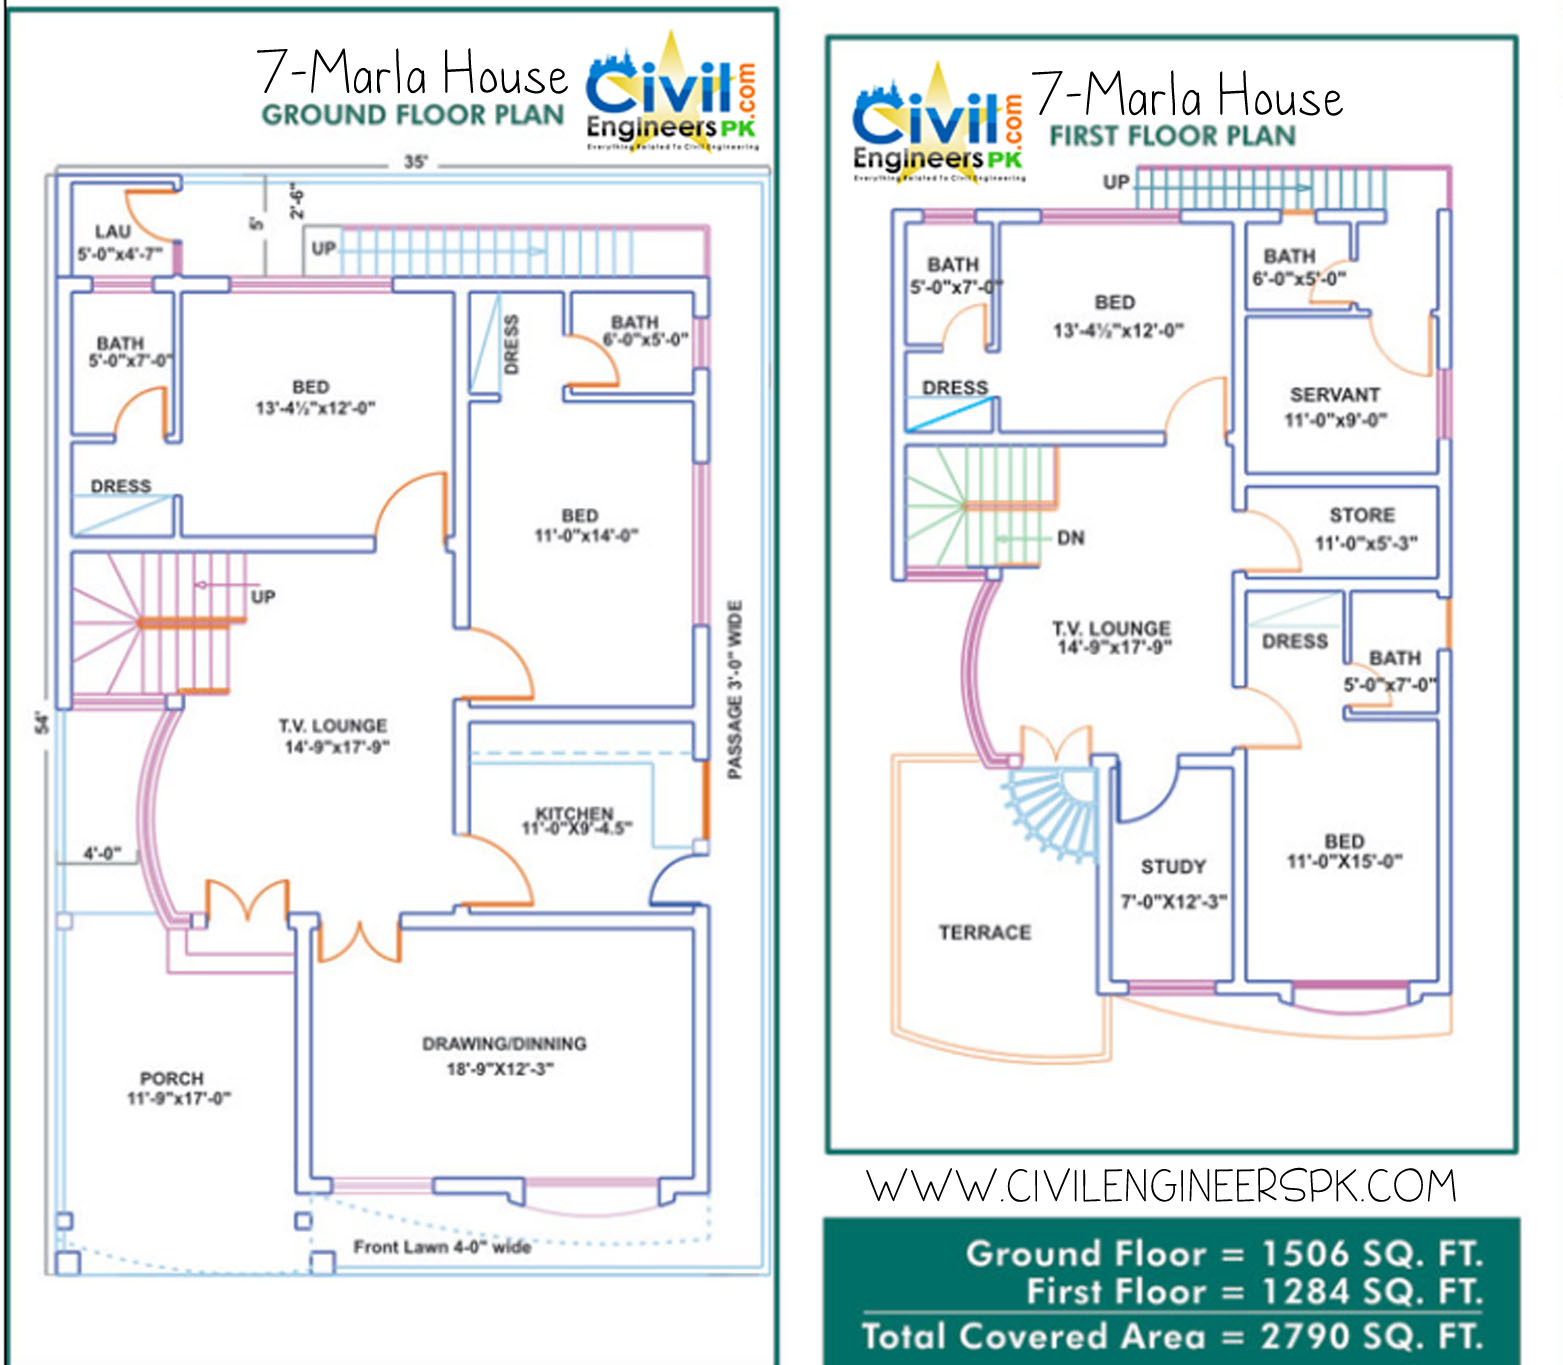 7 marla house plans civil engineers pk for Home map design free layout plan in india